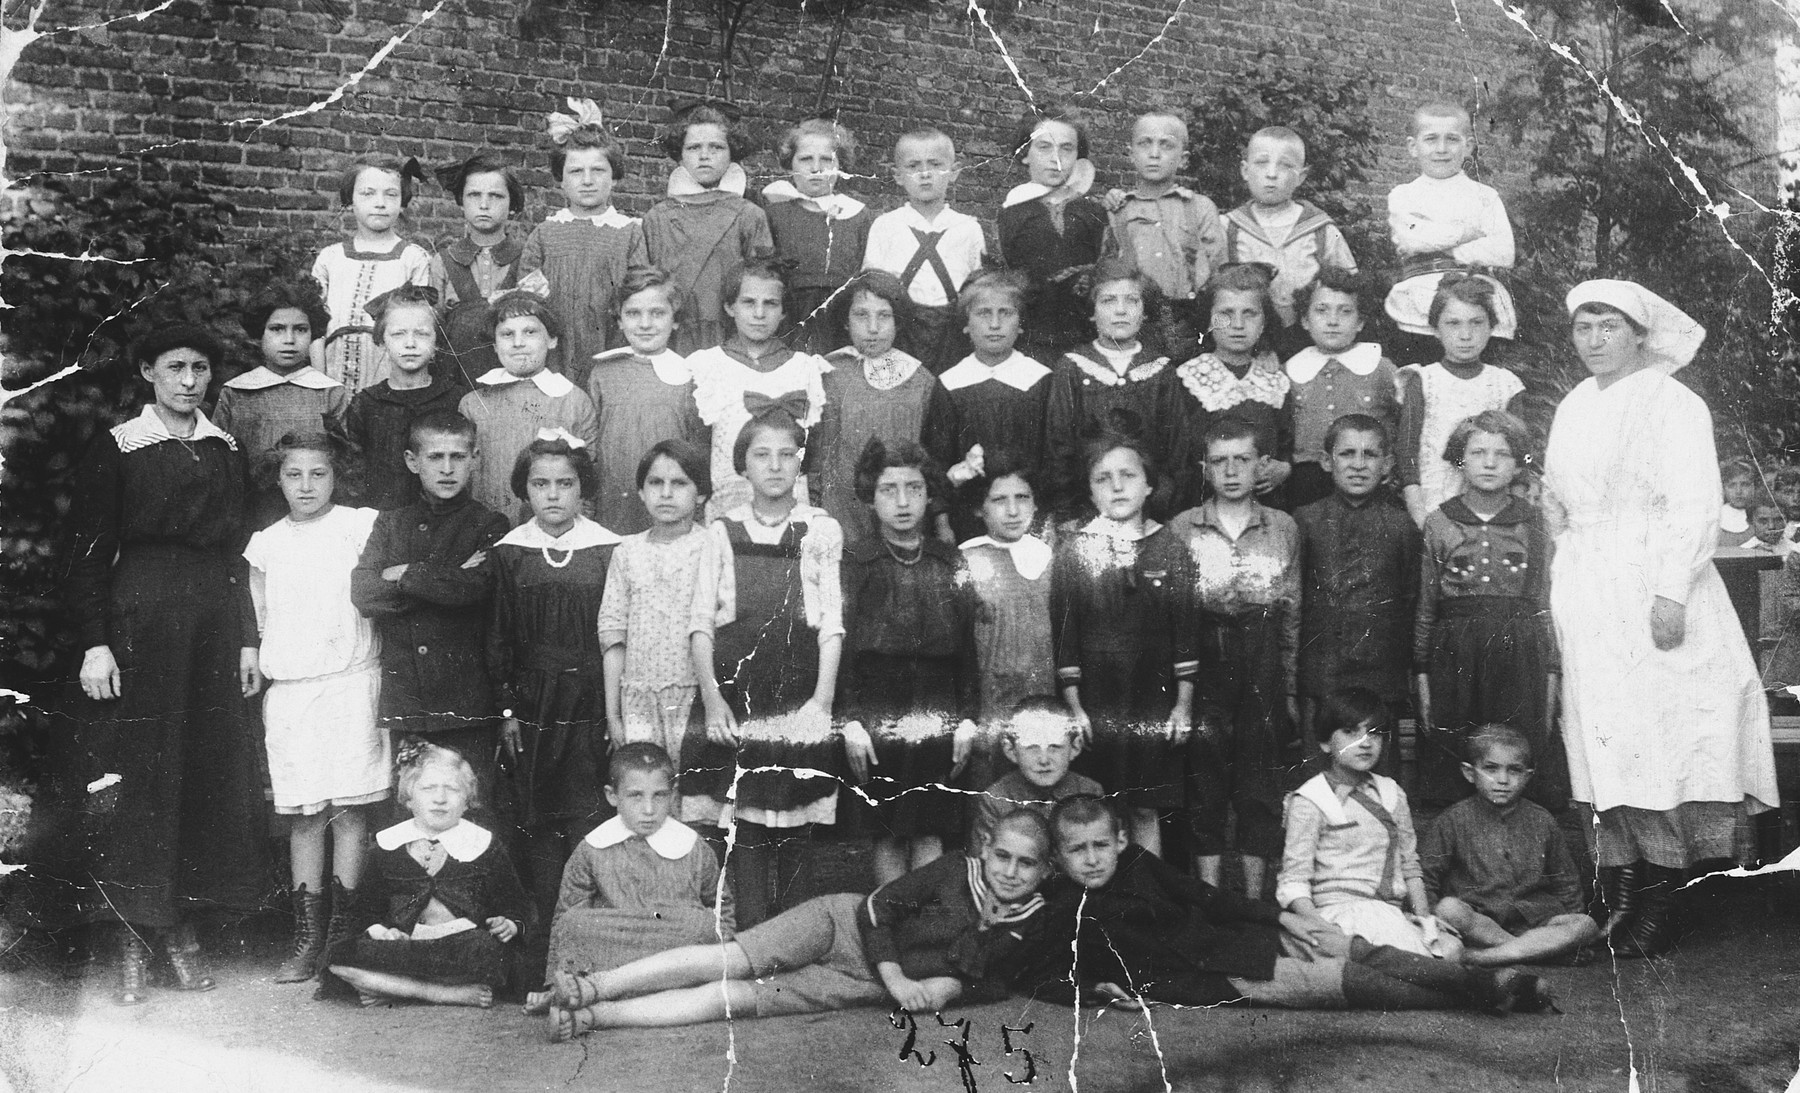 Class portrait of a Jewish elementary school in Lodz.  Among those pictured is Azriel Awret.